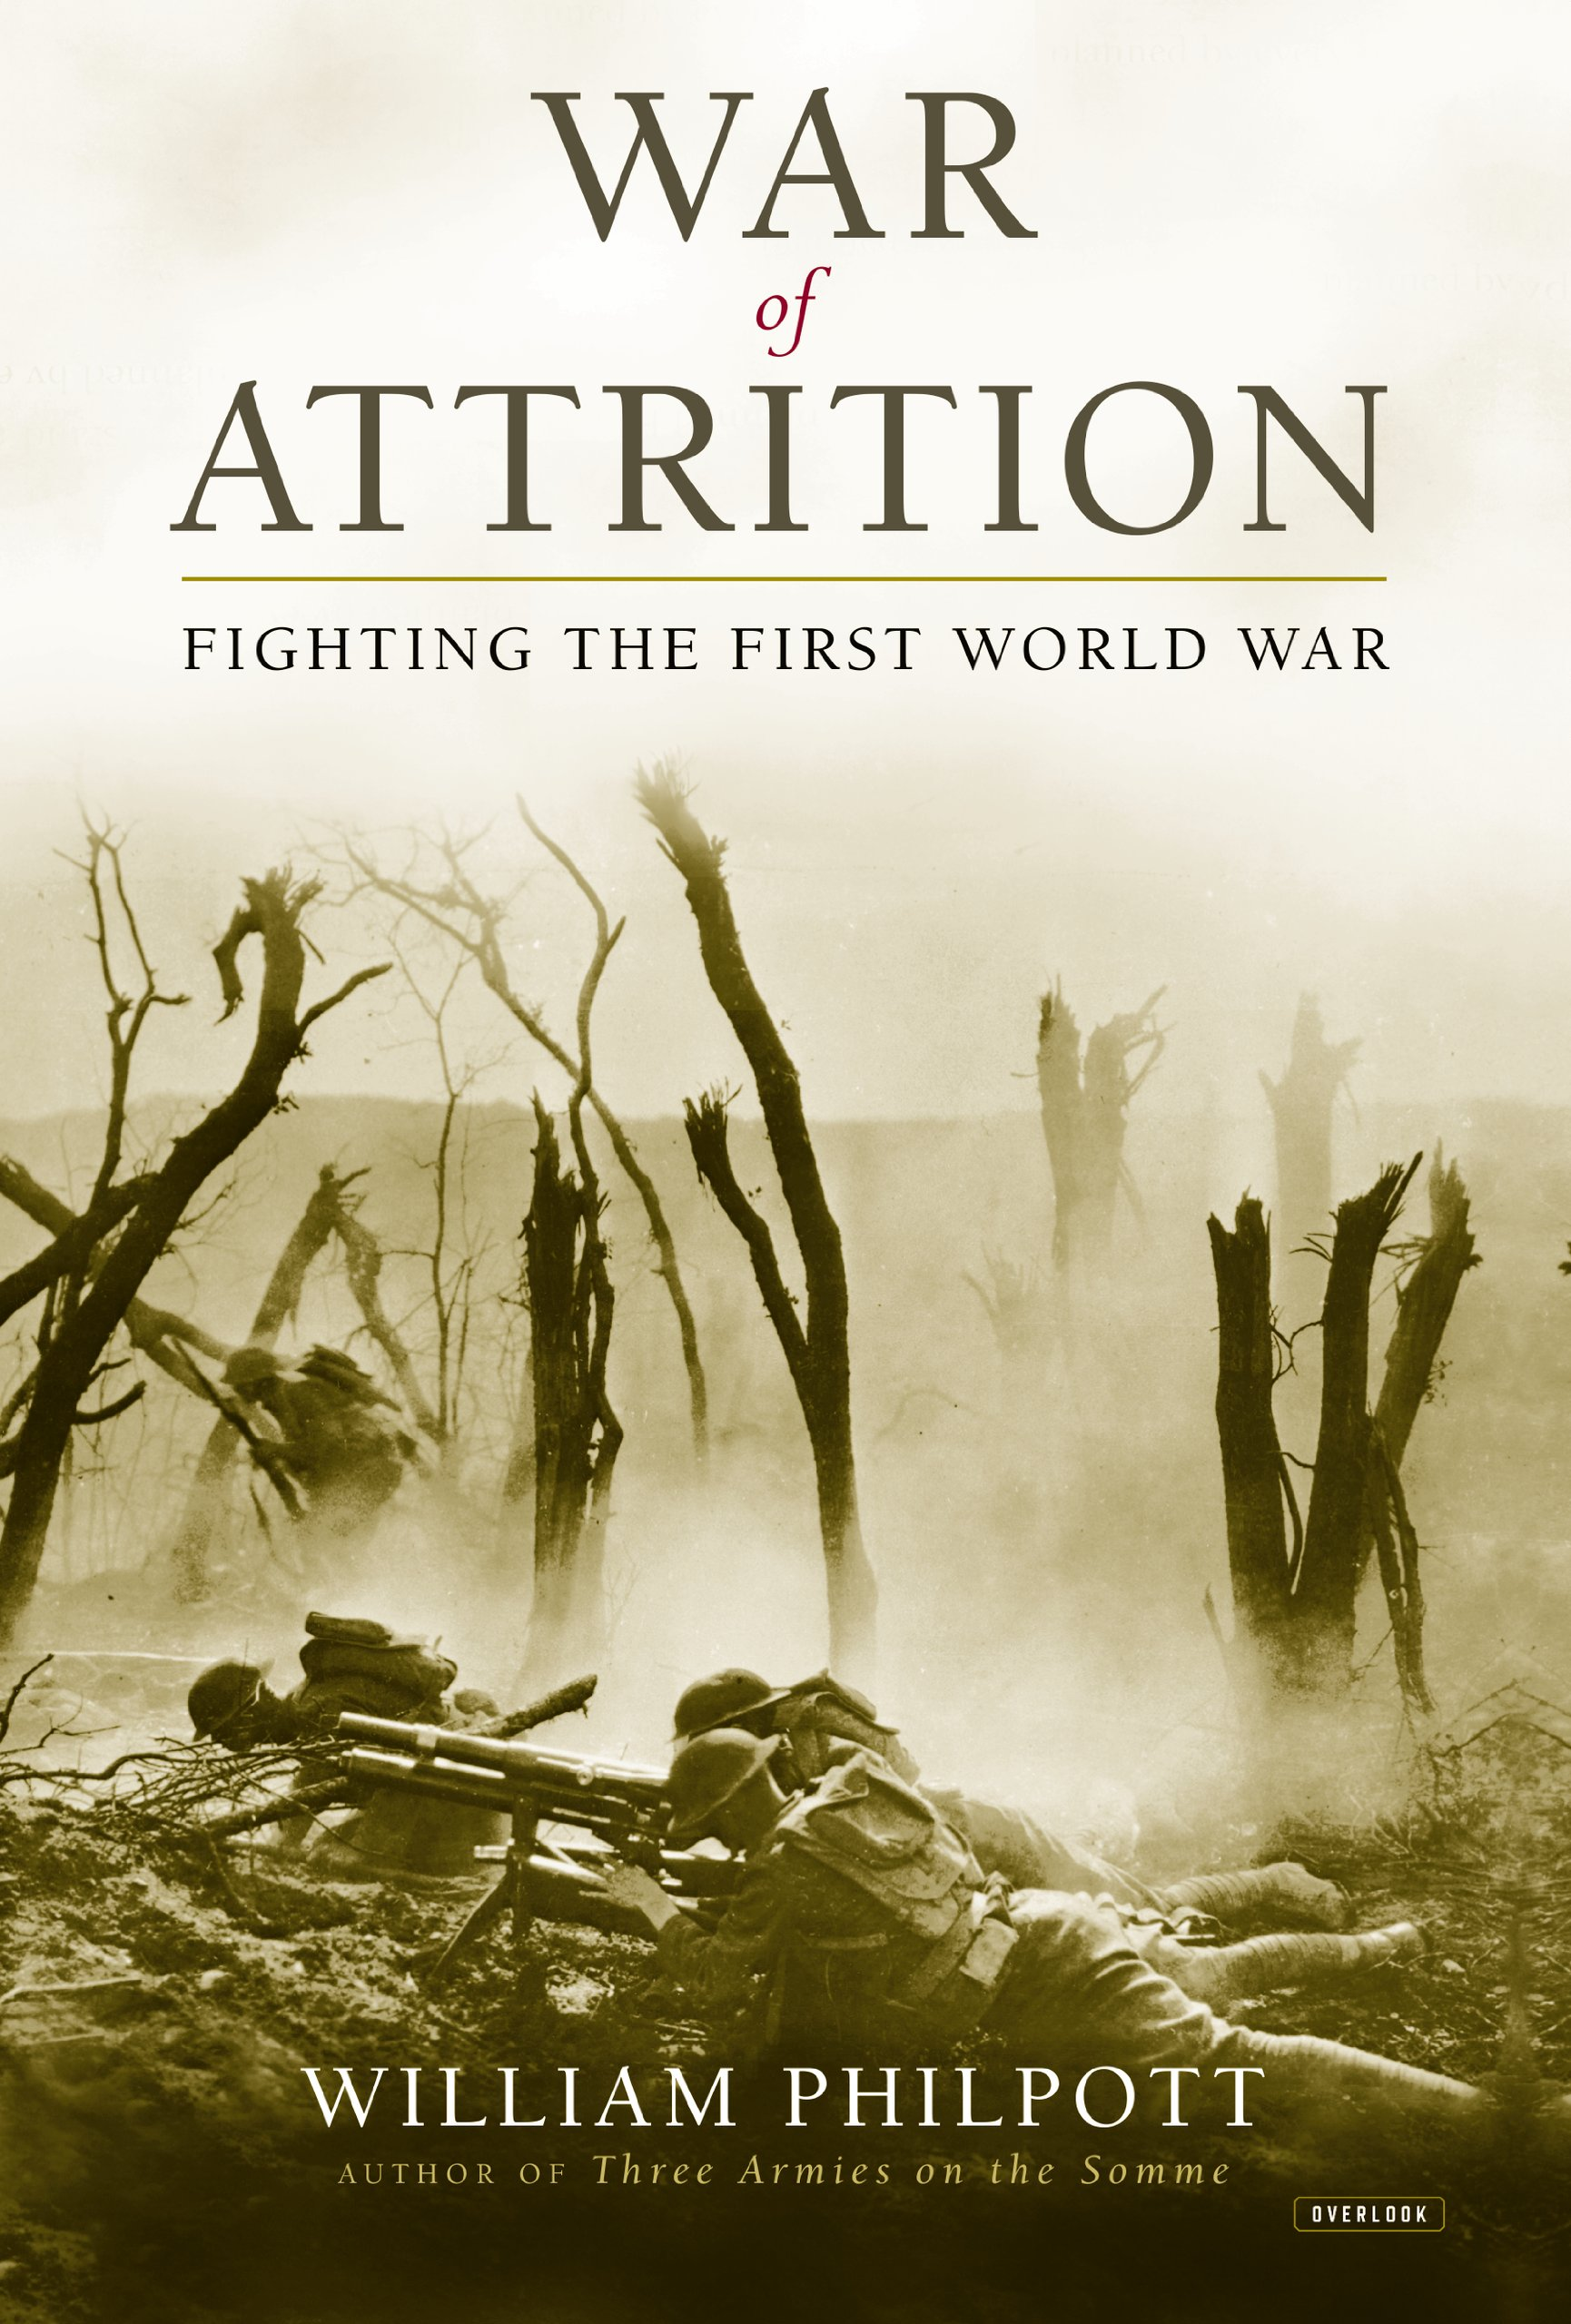 Read Online War of Attrition: Fighting the First World War PDF